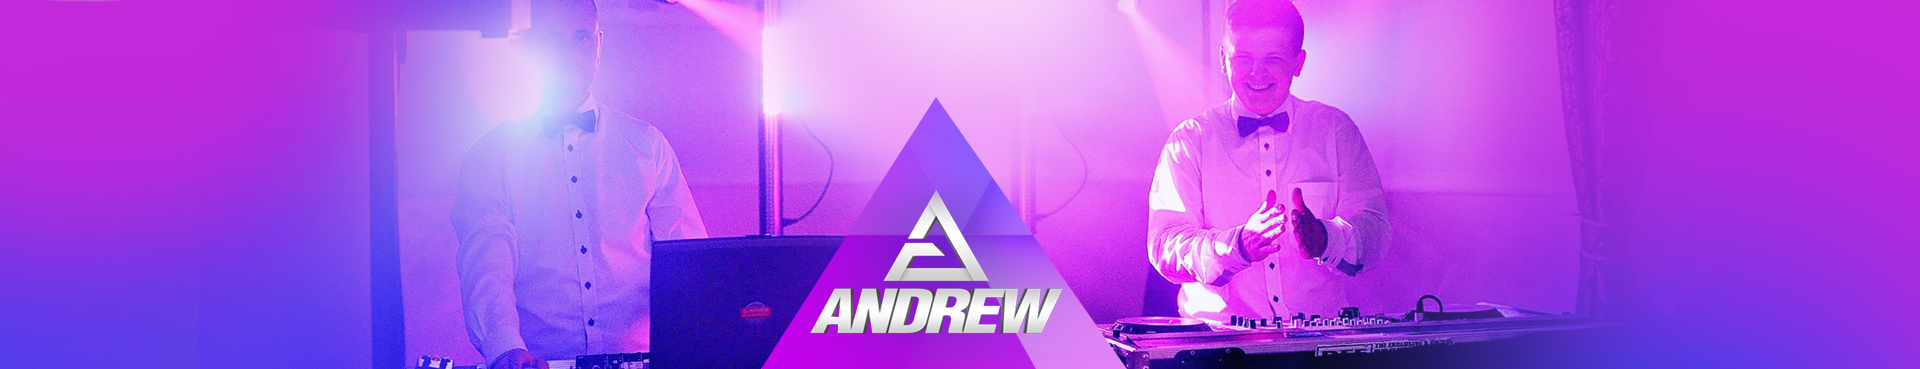 http://djandrew.pl/wp-content/uploads/2016/10/top2.jpg